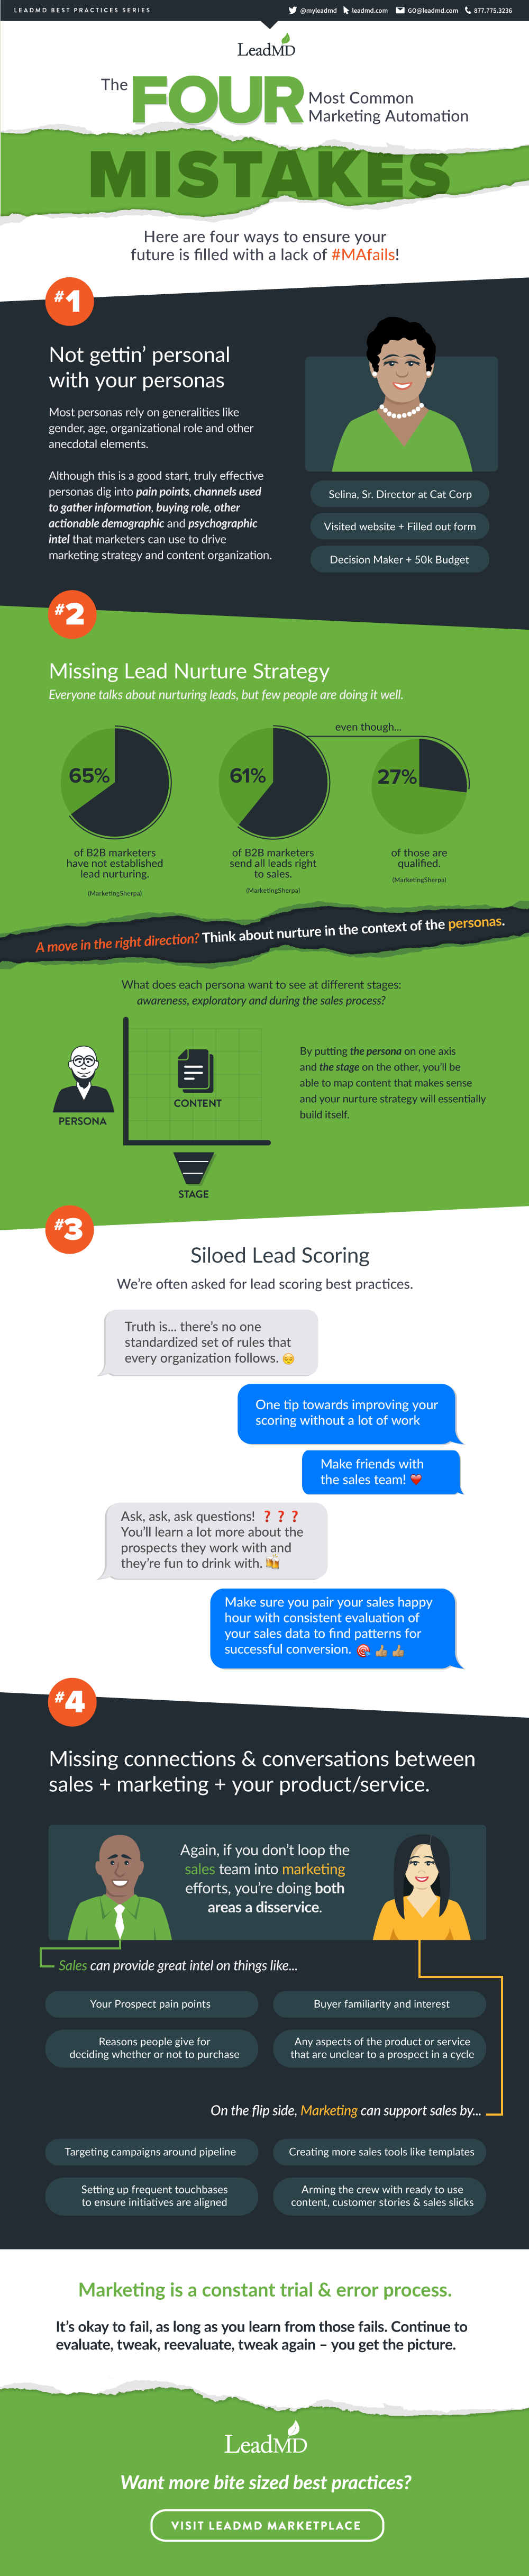 LeadMD Demo - How to Avoid the Four Most Common Marketing Automation Mistakes - Infographic